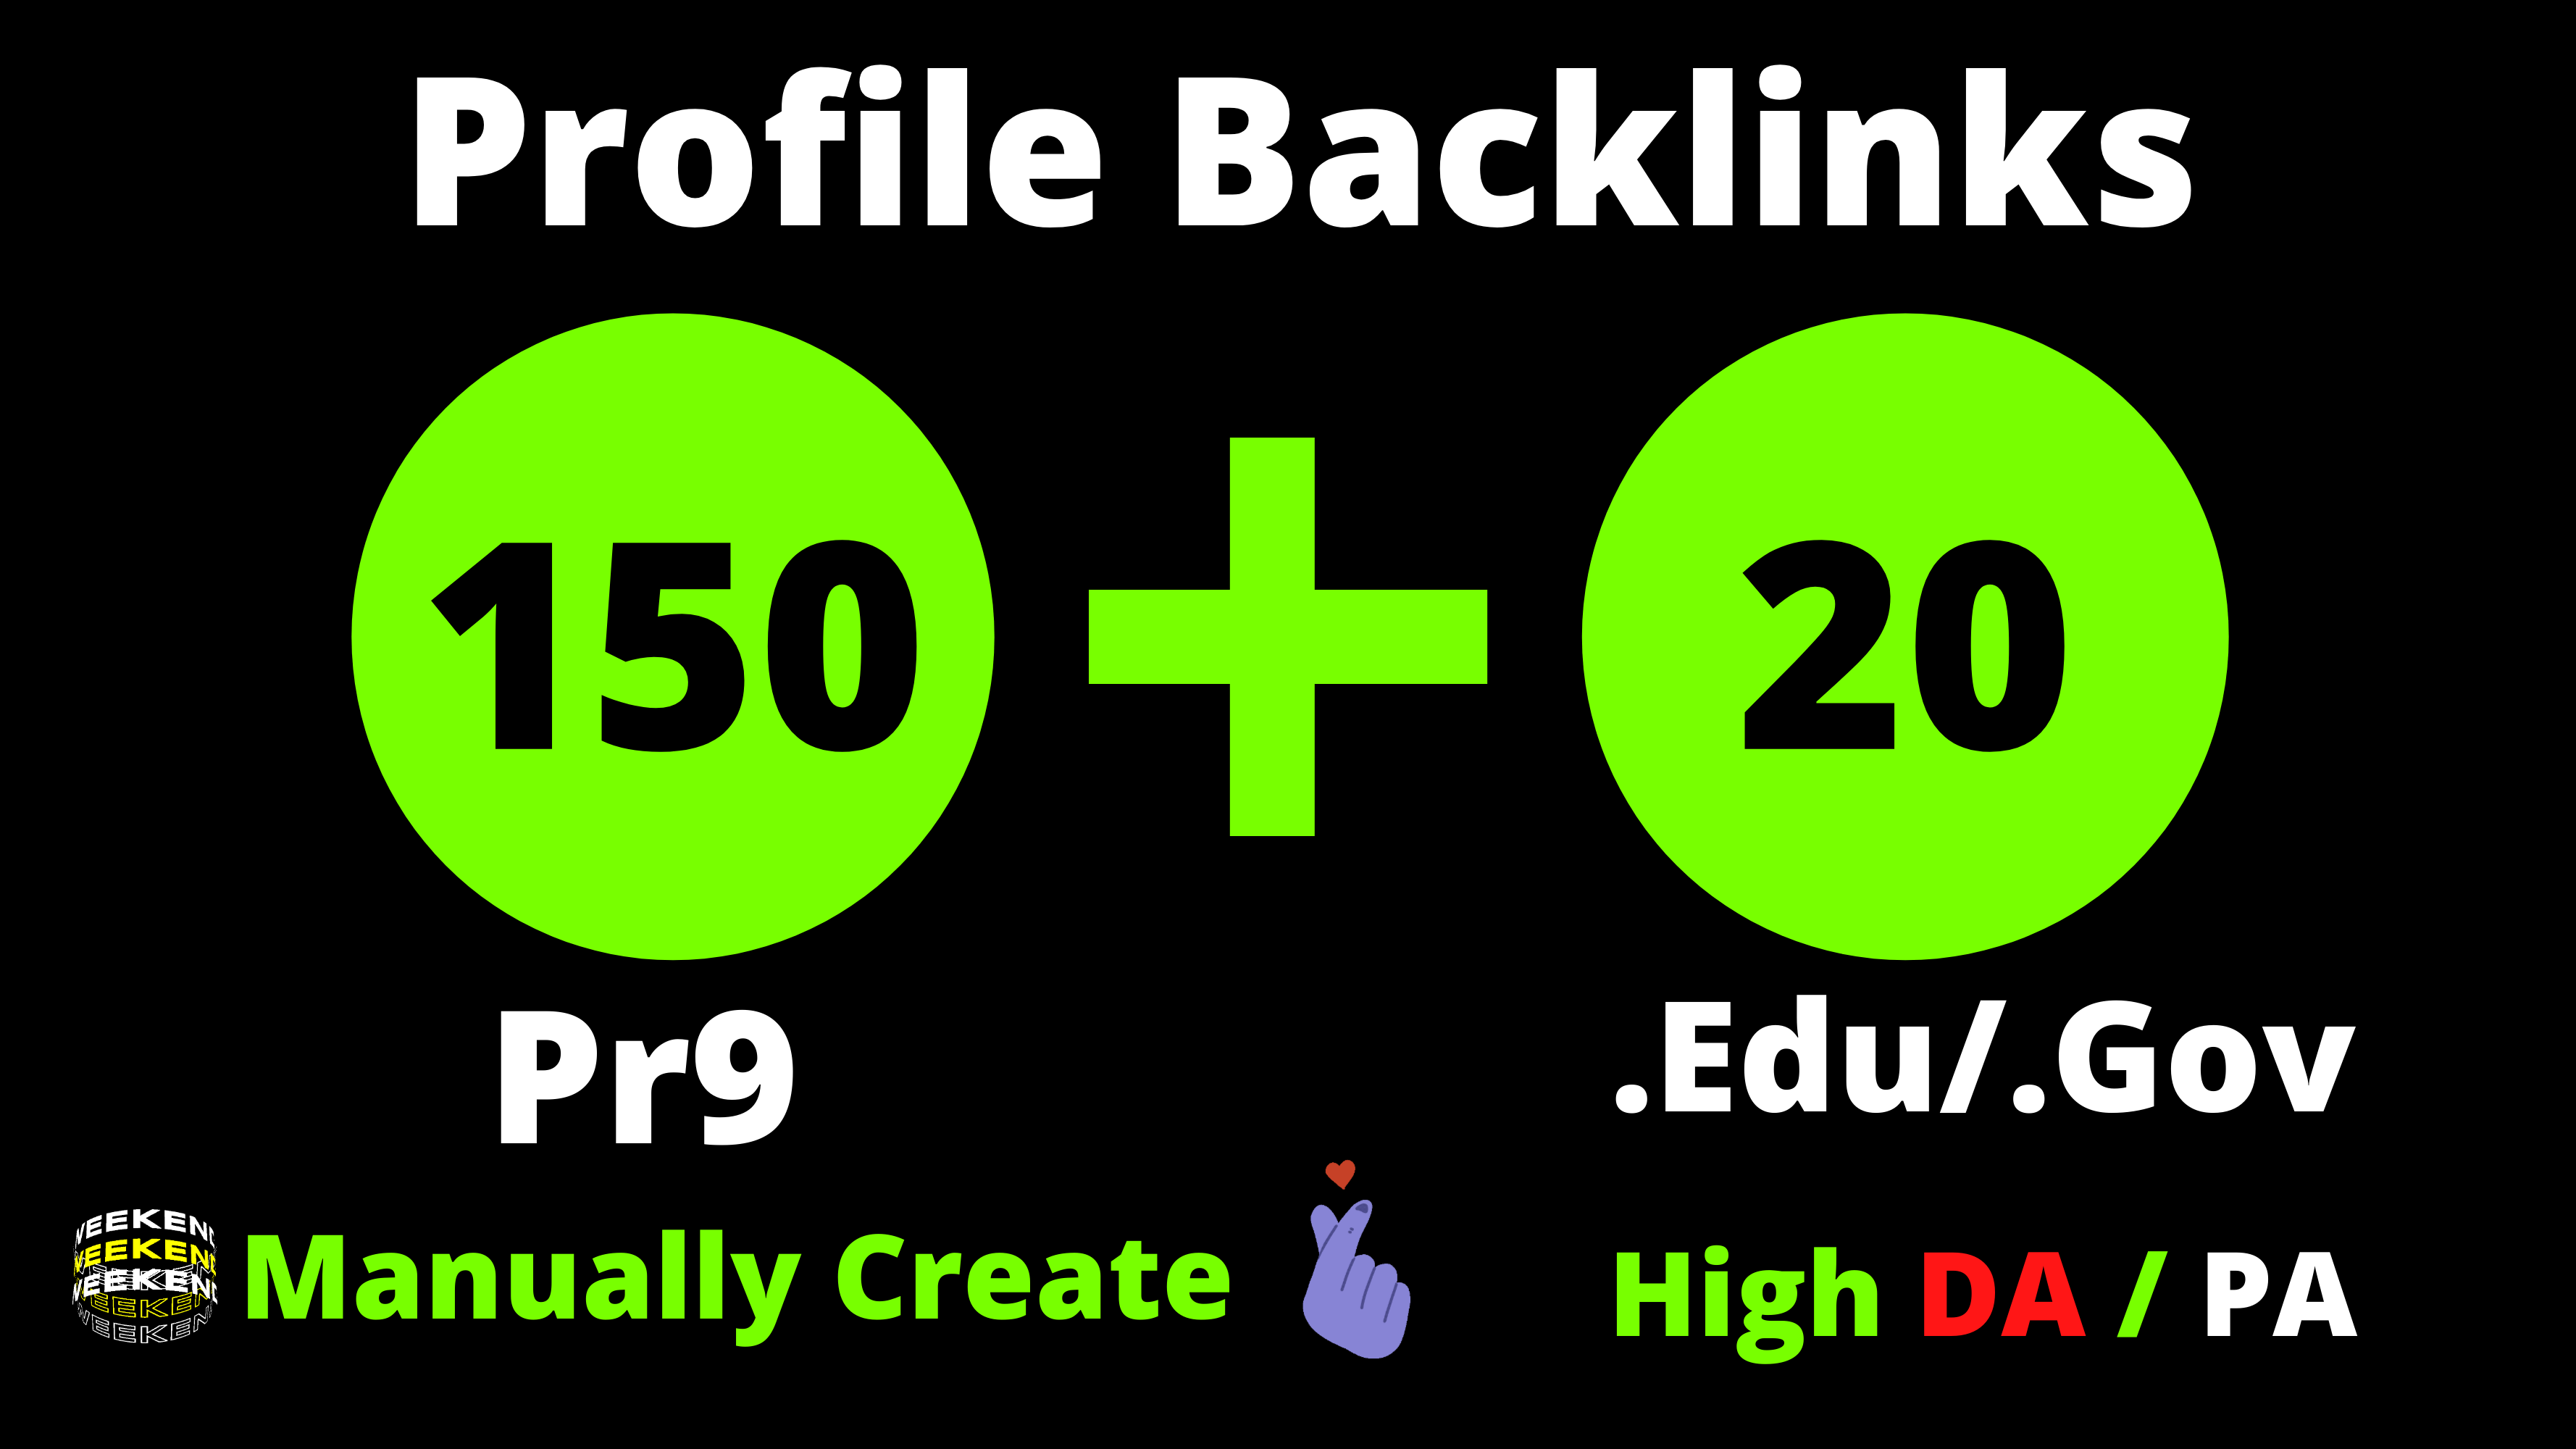 150 Pr9 + 20 Edu/Gov Pr9 High Authority Profile Backlinks-Boost Your Website Google Ranking